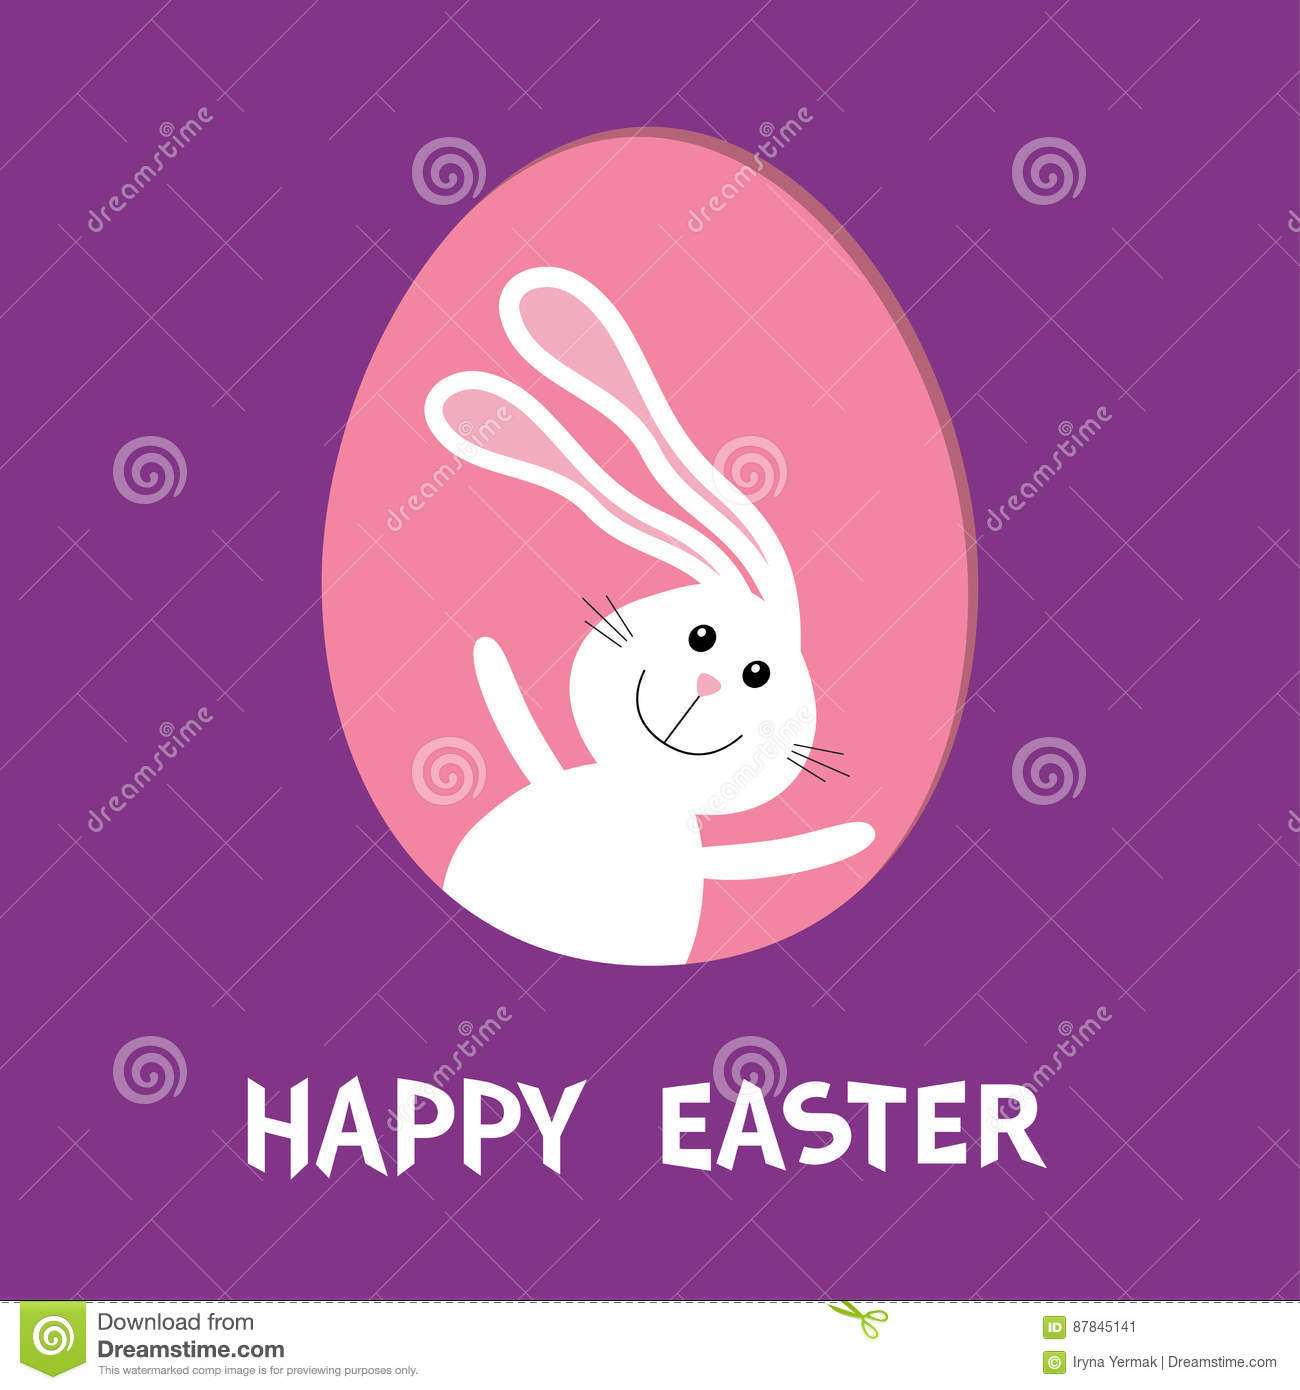 Happy Easter Bunny Rabbit Hare With Big Ears Inside Painted Egg Frame Window Cute Cartoon Character Baby Greeting Card Violet